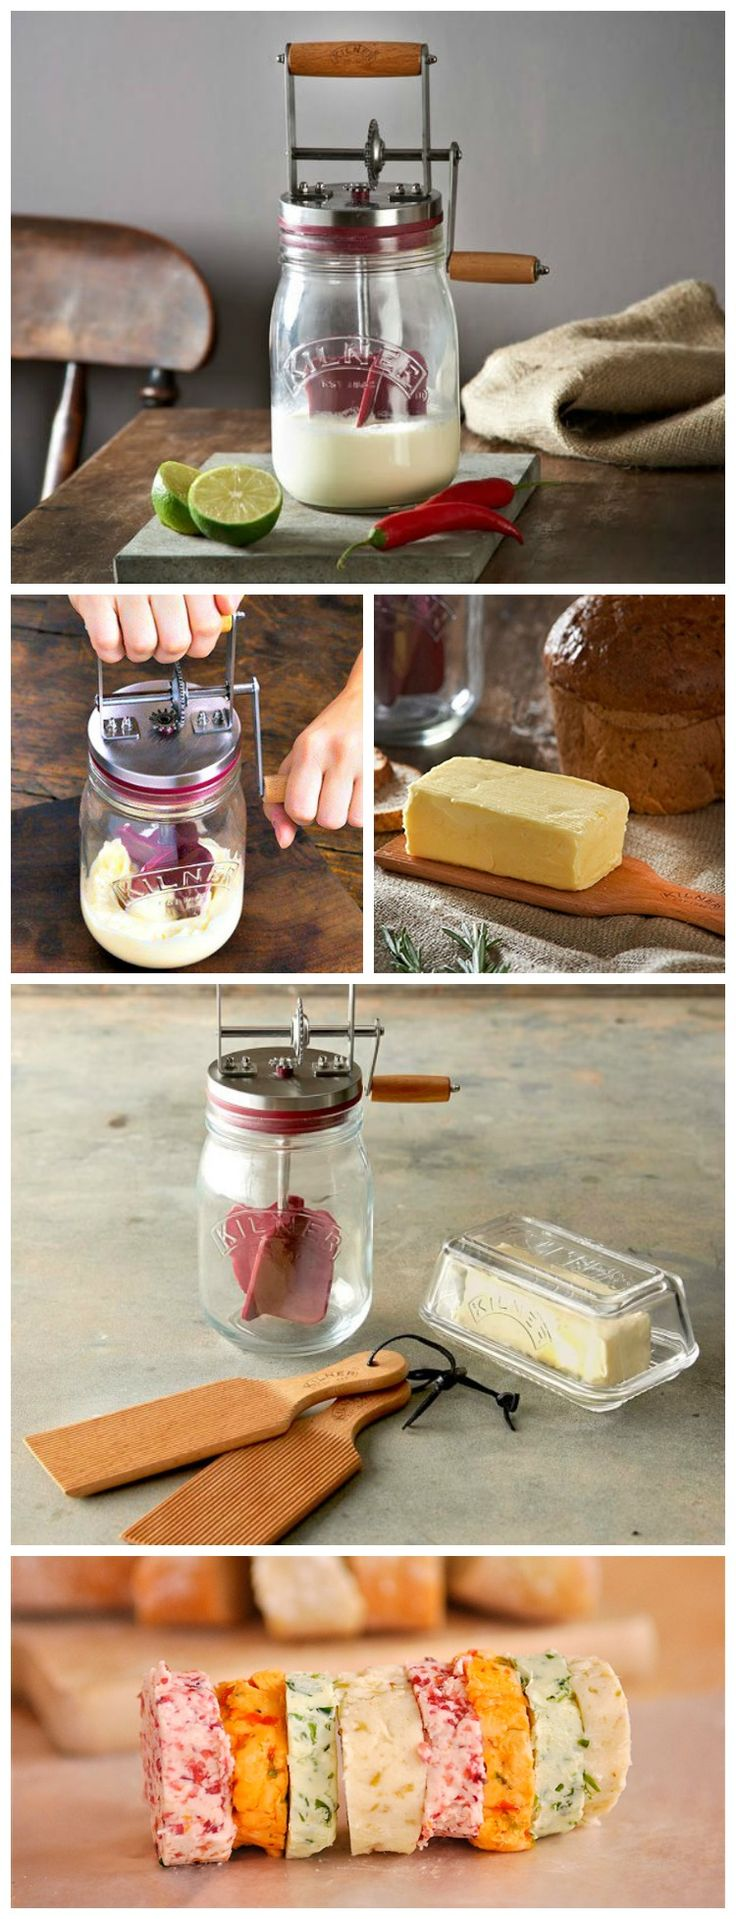 The Kilner Butter Churner gives anyone the opportunity to make delicious handmade butter at home in as little as 10 minutes. #butter #homemade